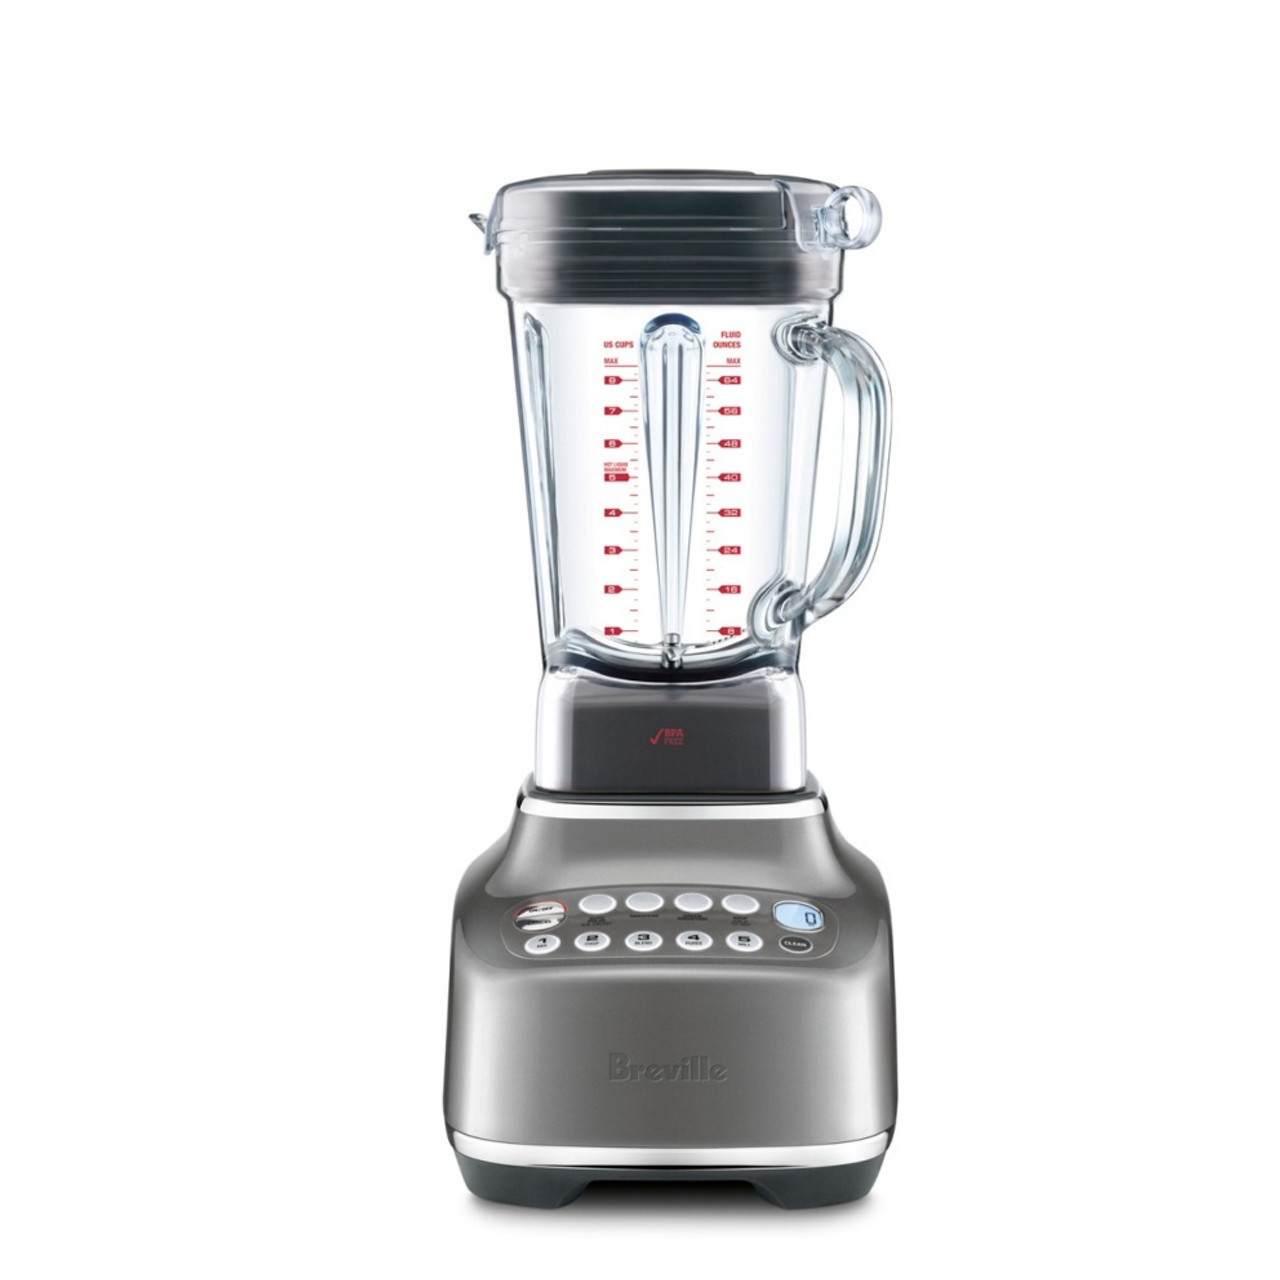 Breville BBL820SHY the Q Quick Super Blender Smoked Hickory